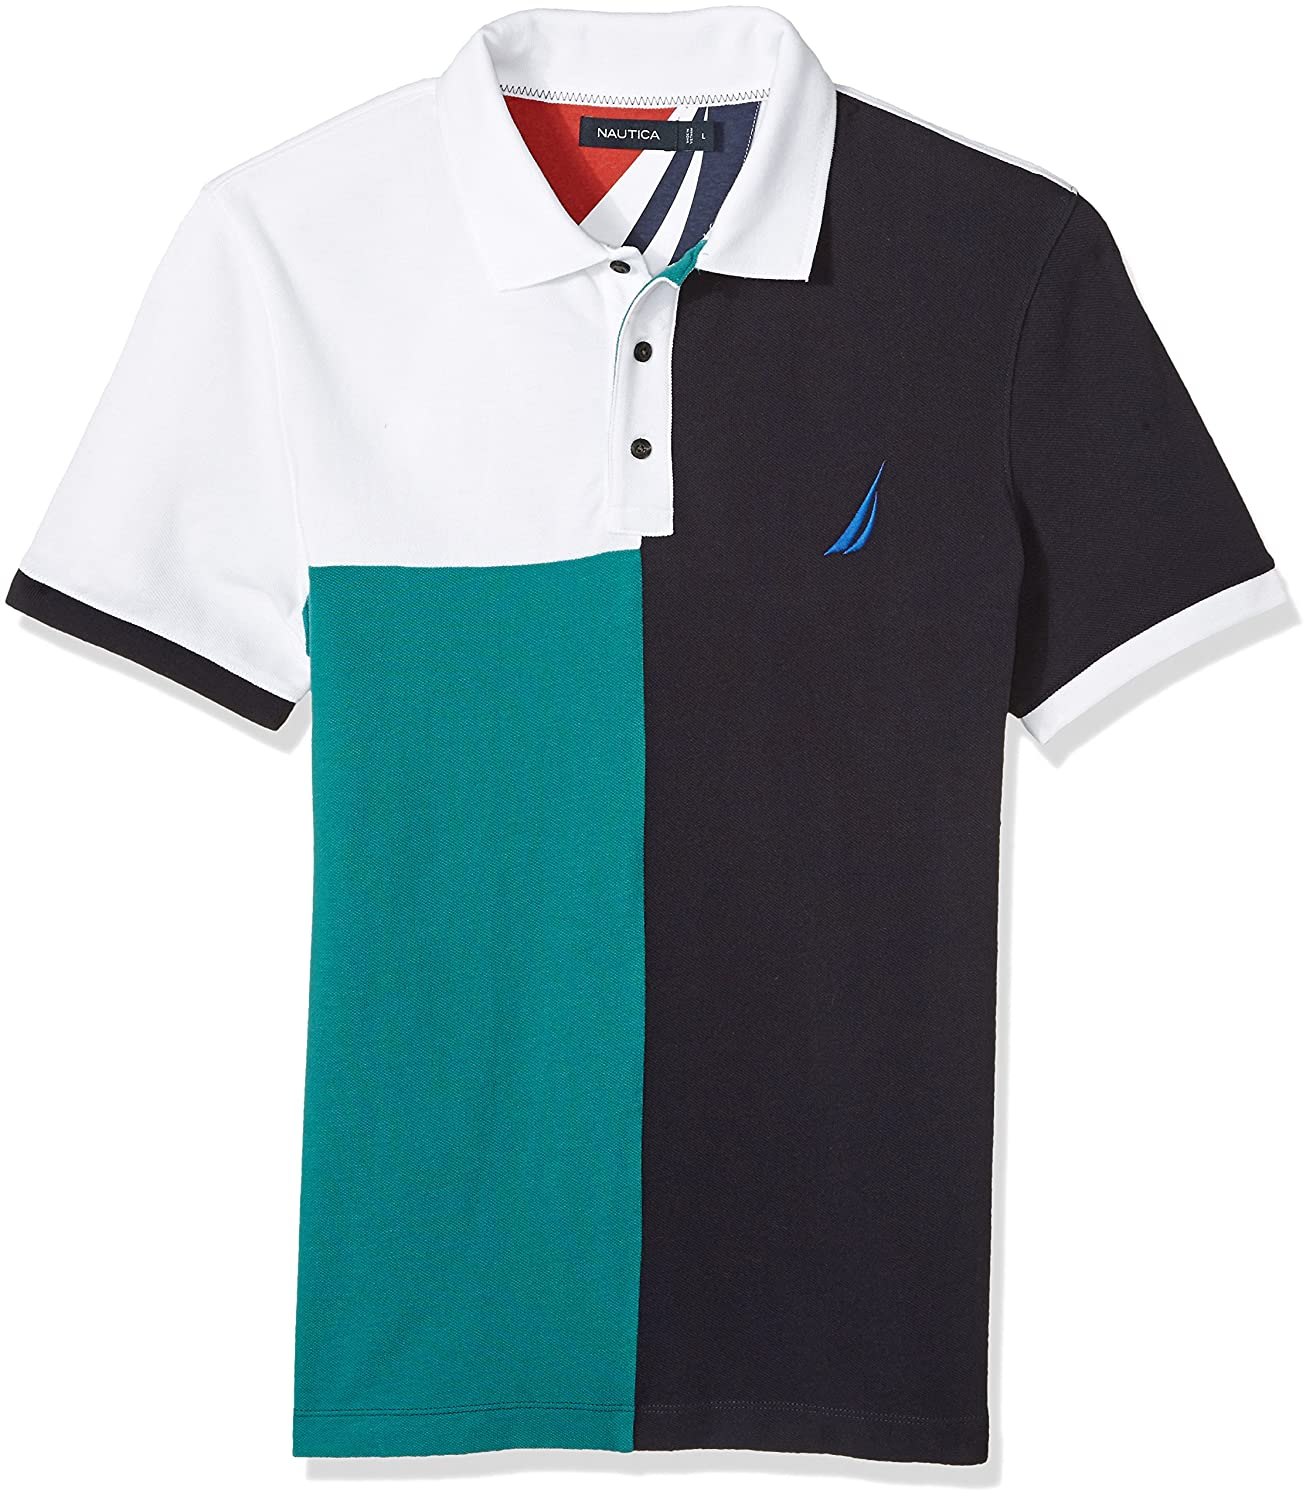 77e3b551 Ever versatile, the sporty polo shirt is a iconic piece that works all year  round. This slim fit version is crafted in a comfortable cotton with logo  ...